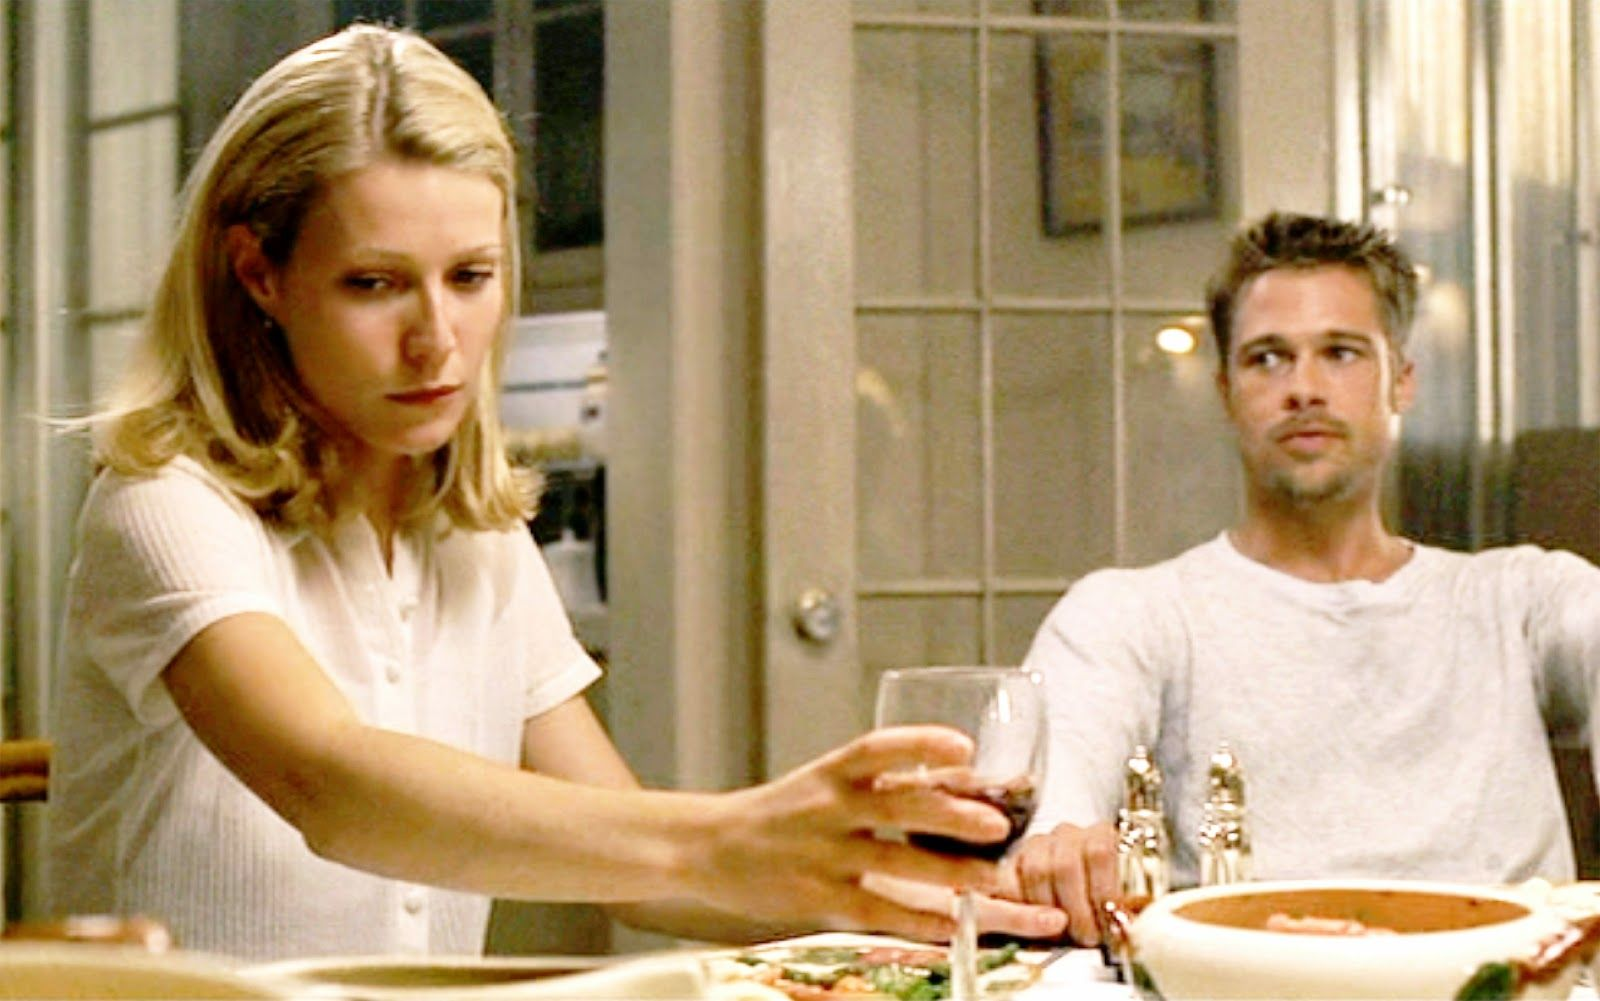 Brad Pitt and Gwyneth Paltrow in Seven